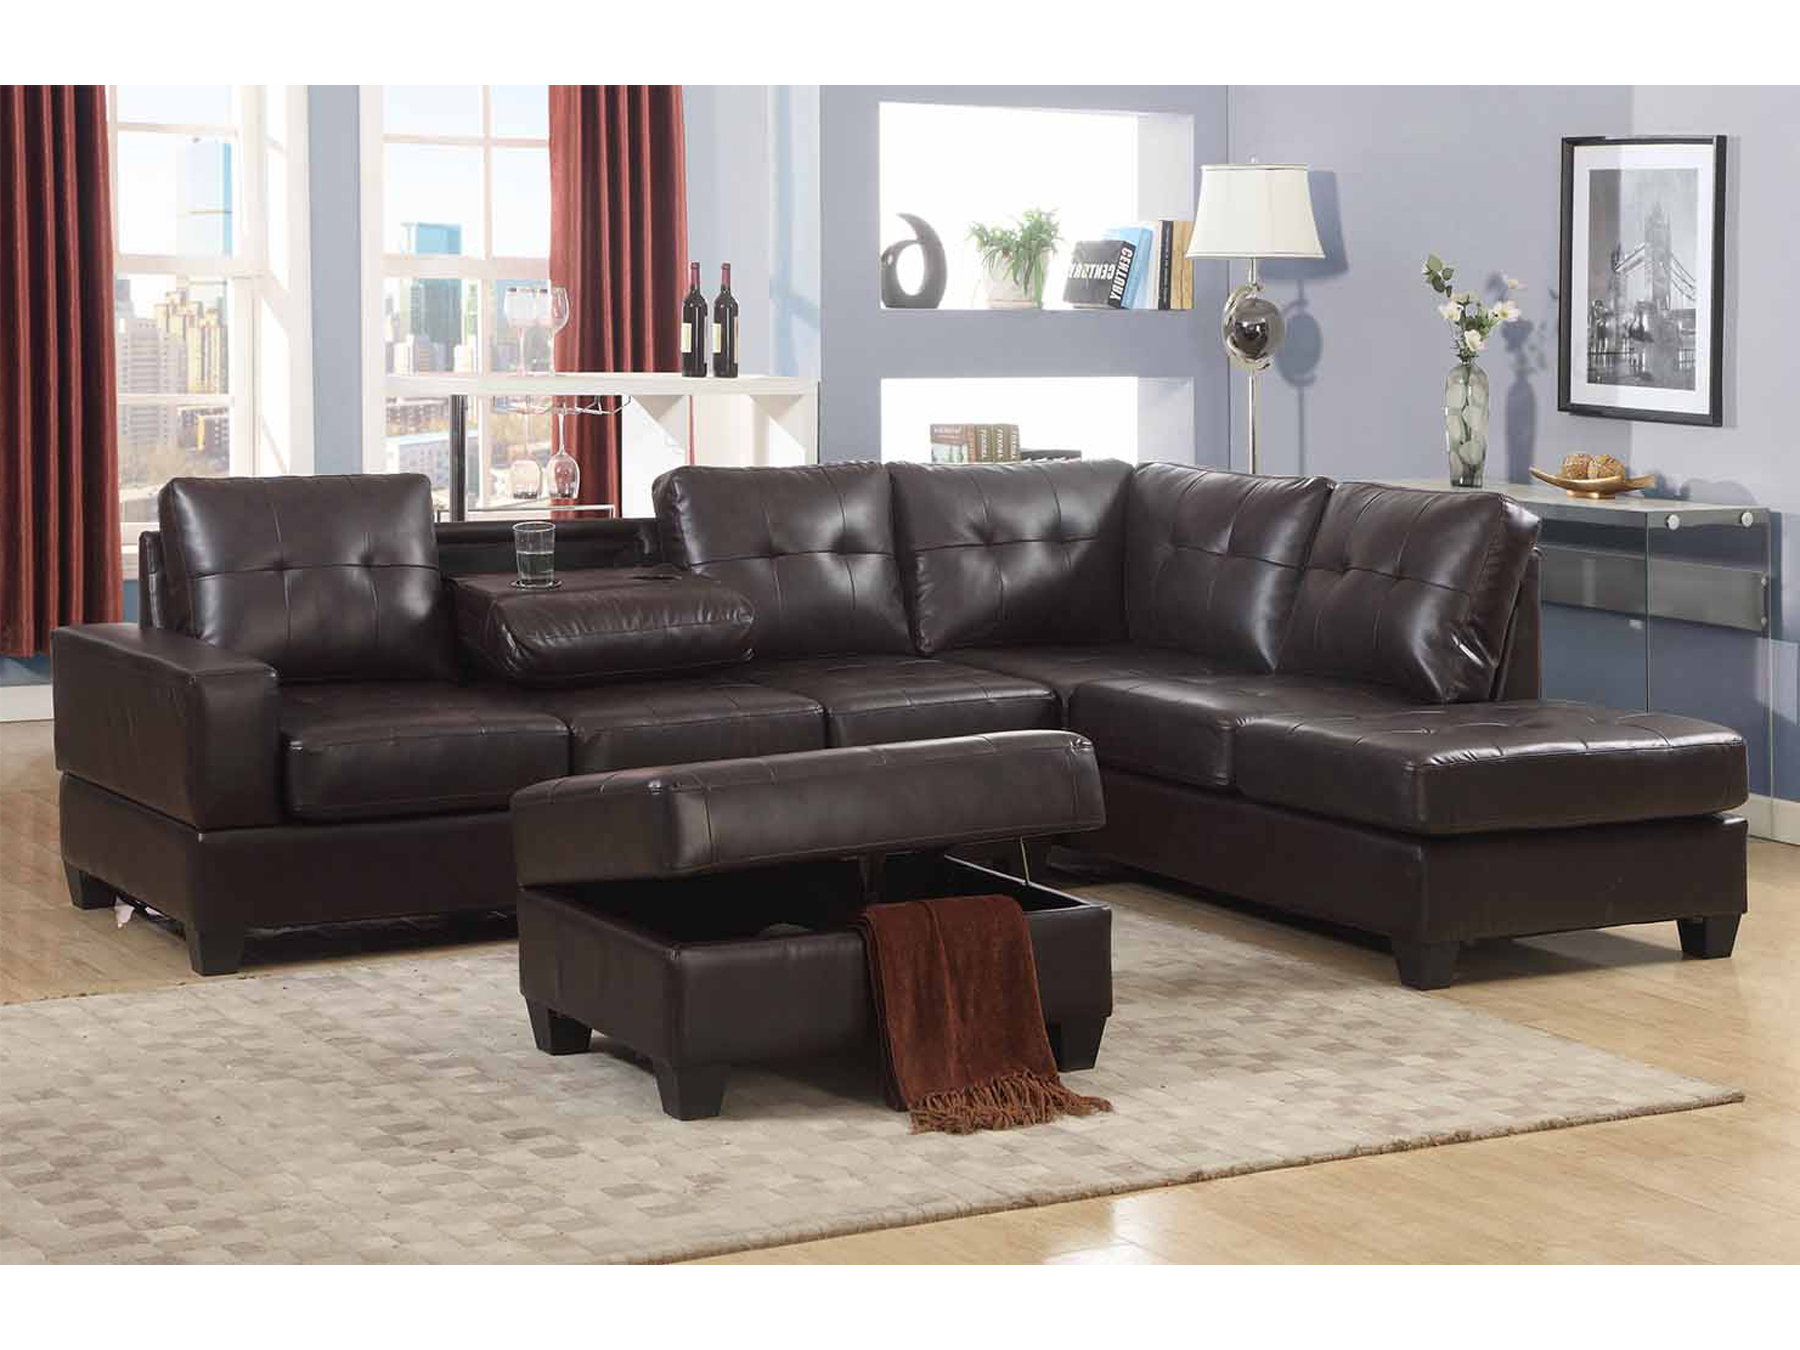 Sectional couch ottoman chocolate microfiber sectional for Brighton taupe 3 piece chaise and sofa set